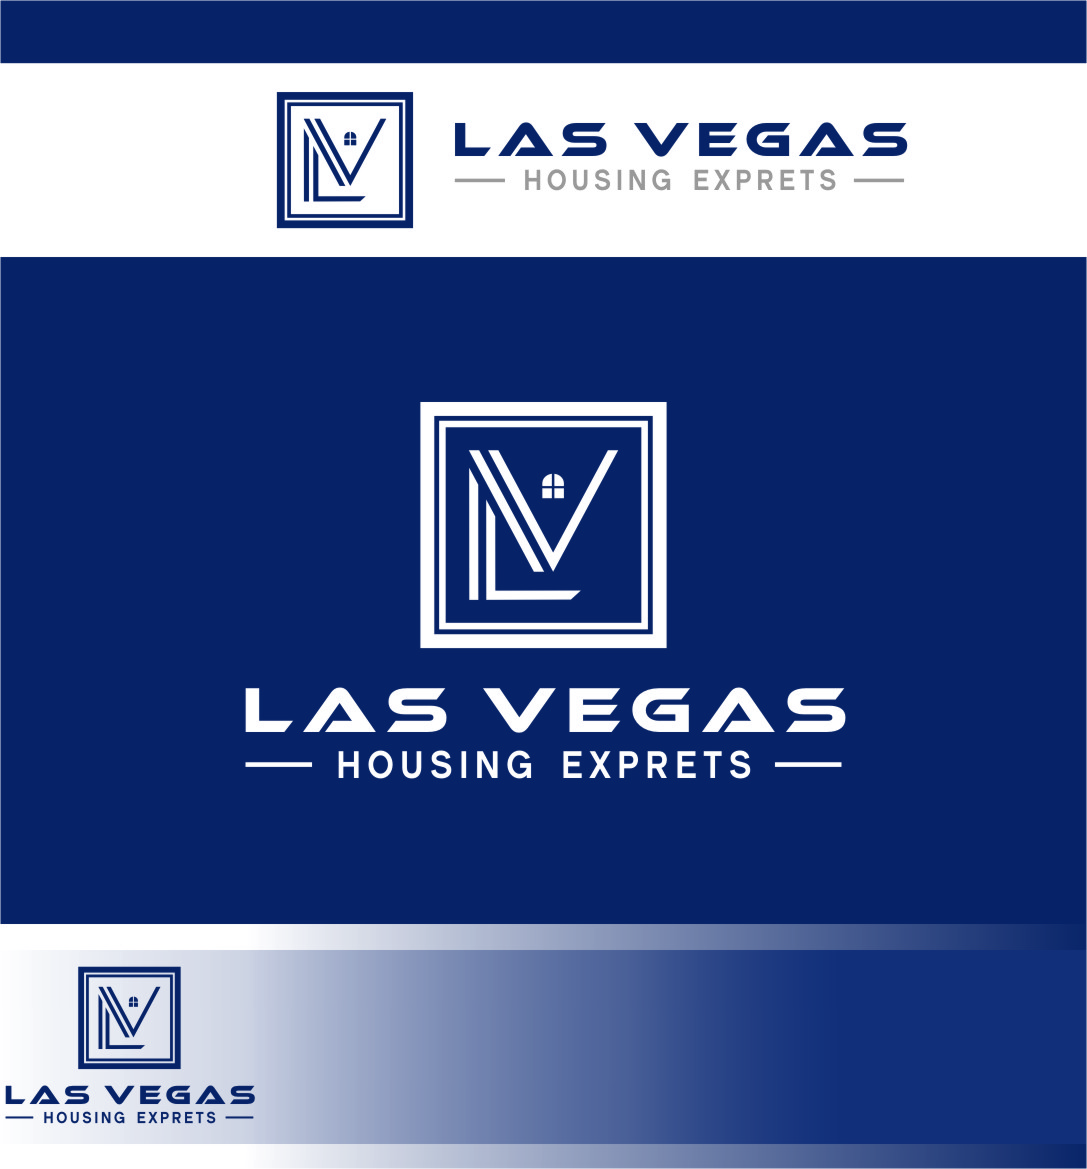 Logo Design by Ngepet_art - Entry No. 73 in the Logo Design Contest Las Vegas Housing Experts Logo Design.